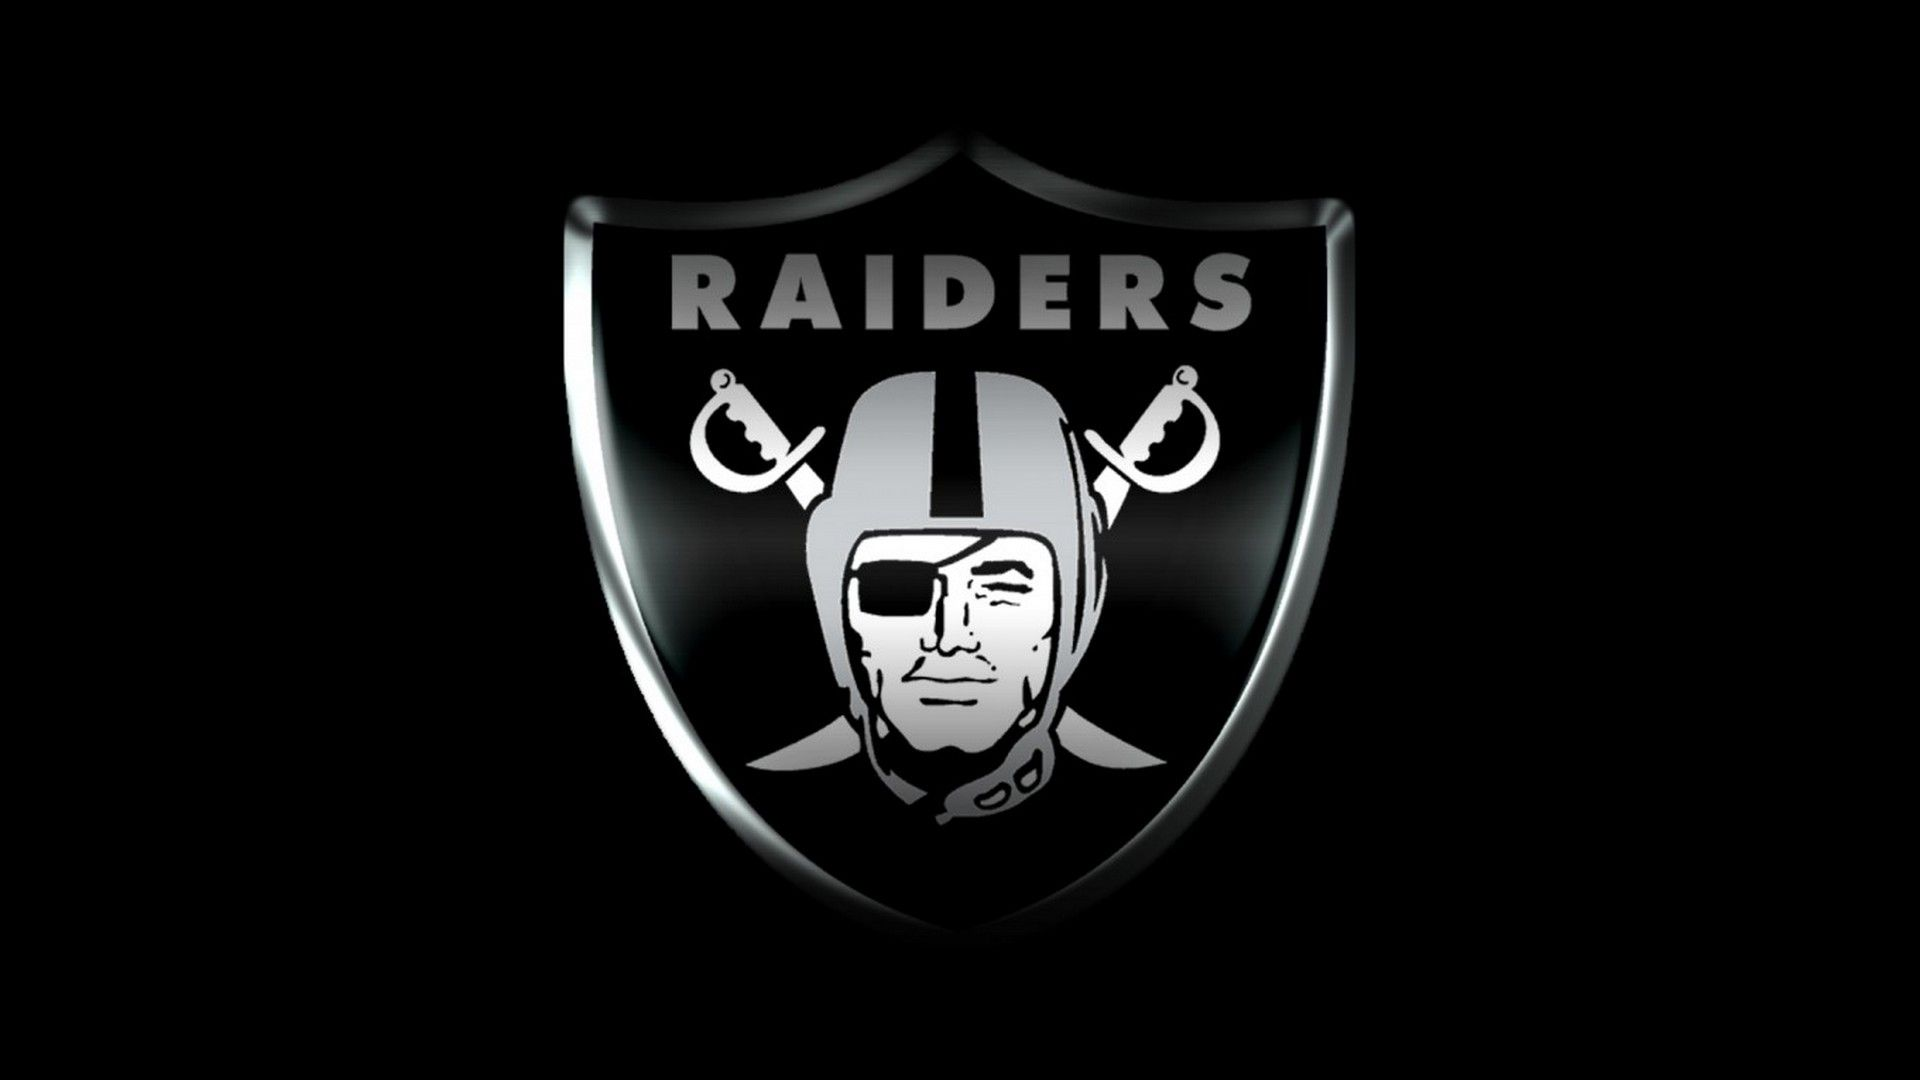 Oakland Raiders Desktop Wallpapers Oakland raiders